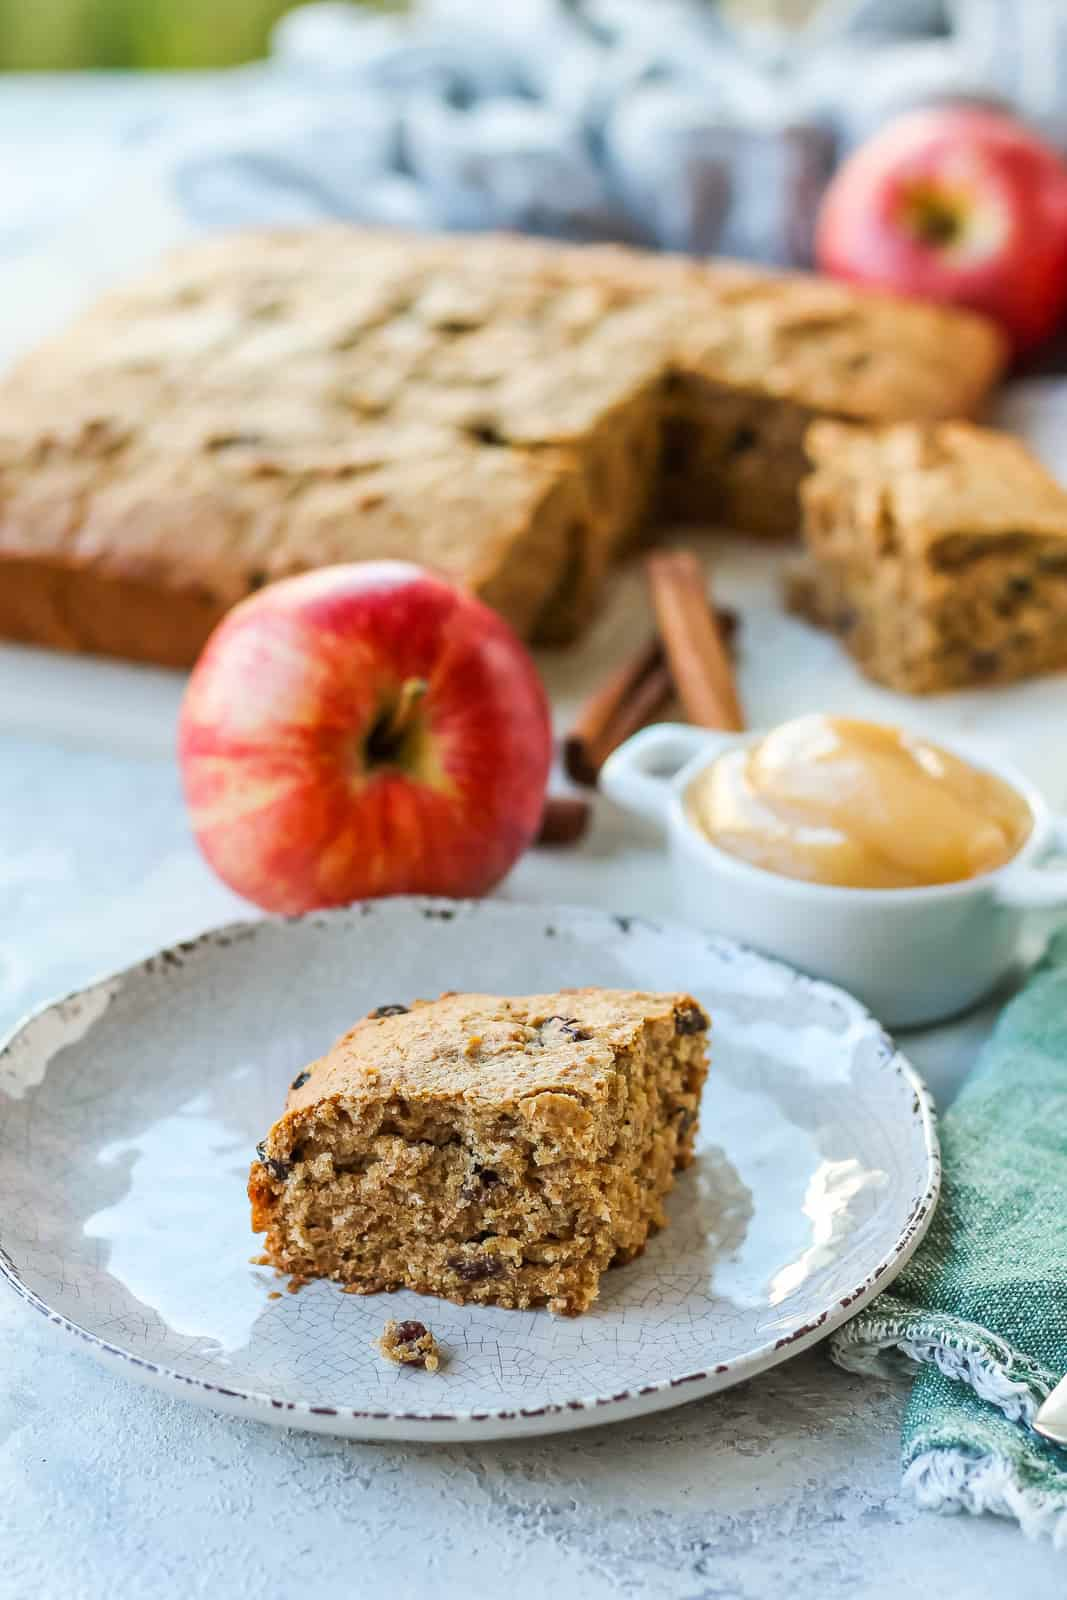 a square of applesauce snacking cake on a white plate with a tray of cake and some whole red apples in the background